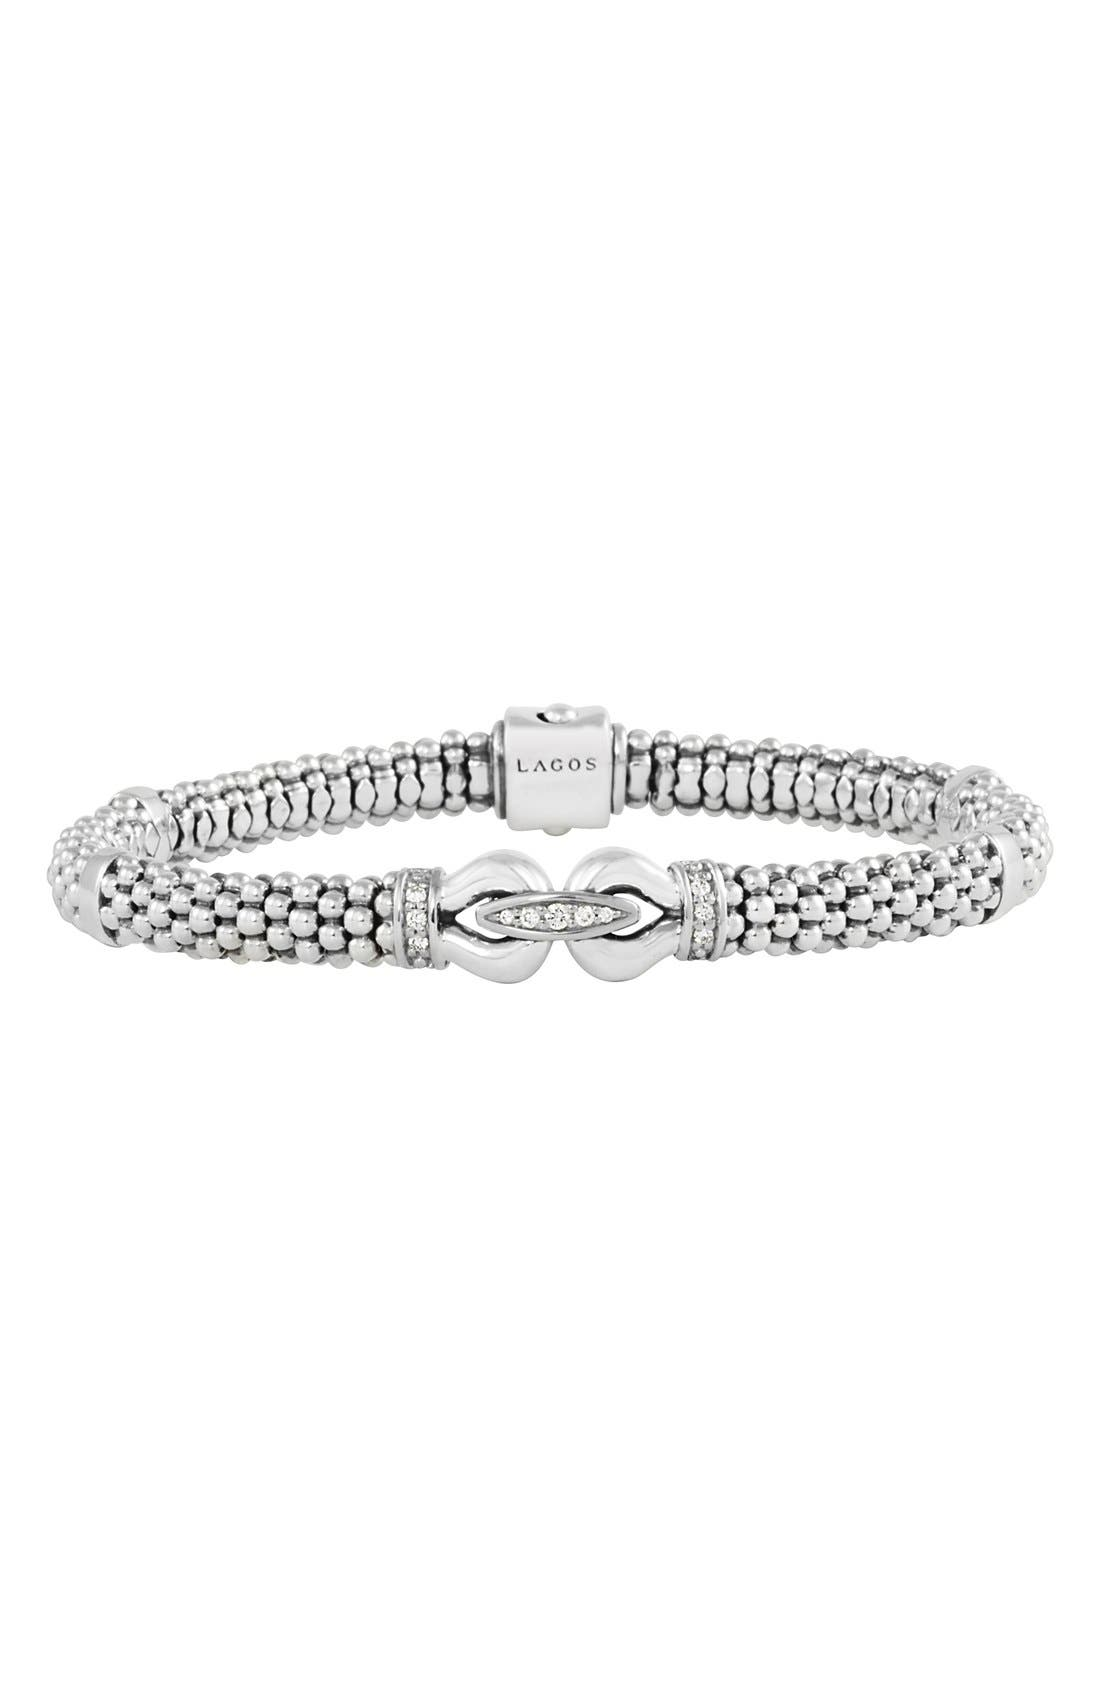 Main Image - LAGOS 'Derby' Diamond Buckle Rope Bracelet